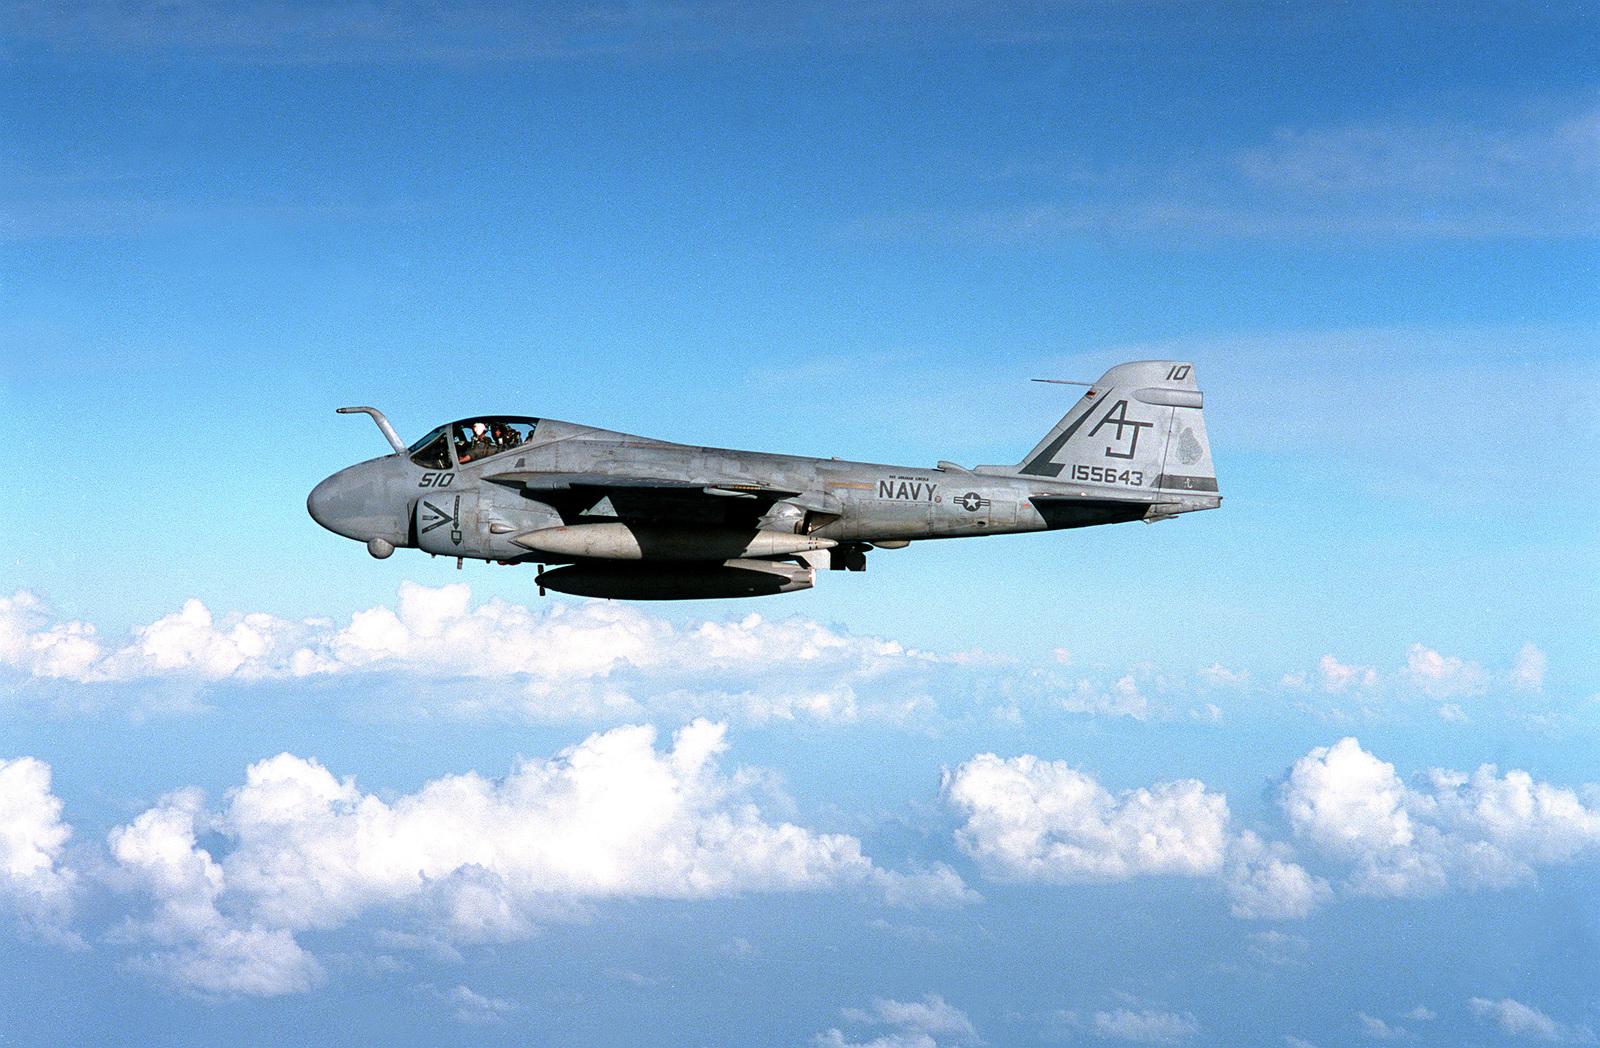 A left side view of an Attack Squadron 65 (VA-65) A-6E Intruder aircraft in flight. The aircraft is based aboard the nuclear-powered aircraft carrier USS ABRAHAM LINCOLN (CVN-72) during the ship's shakedown cruise